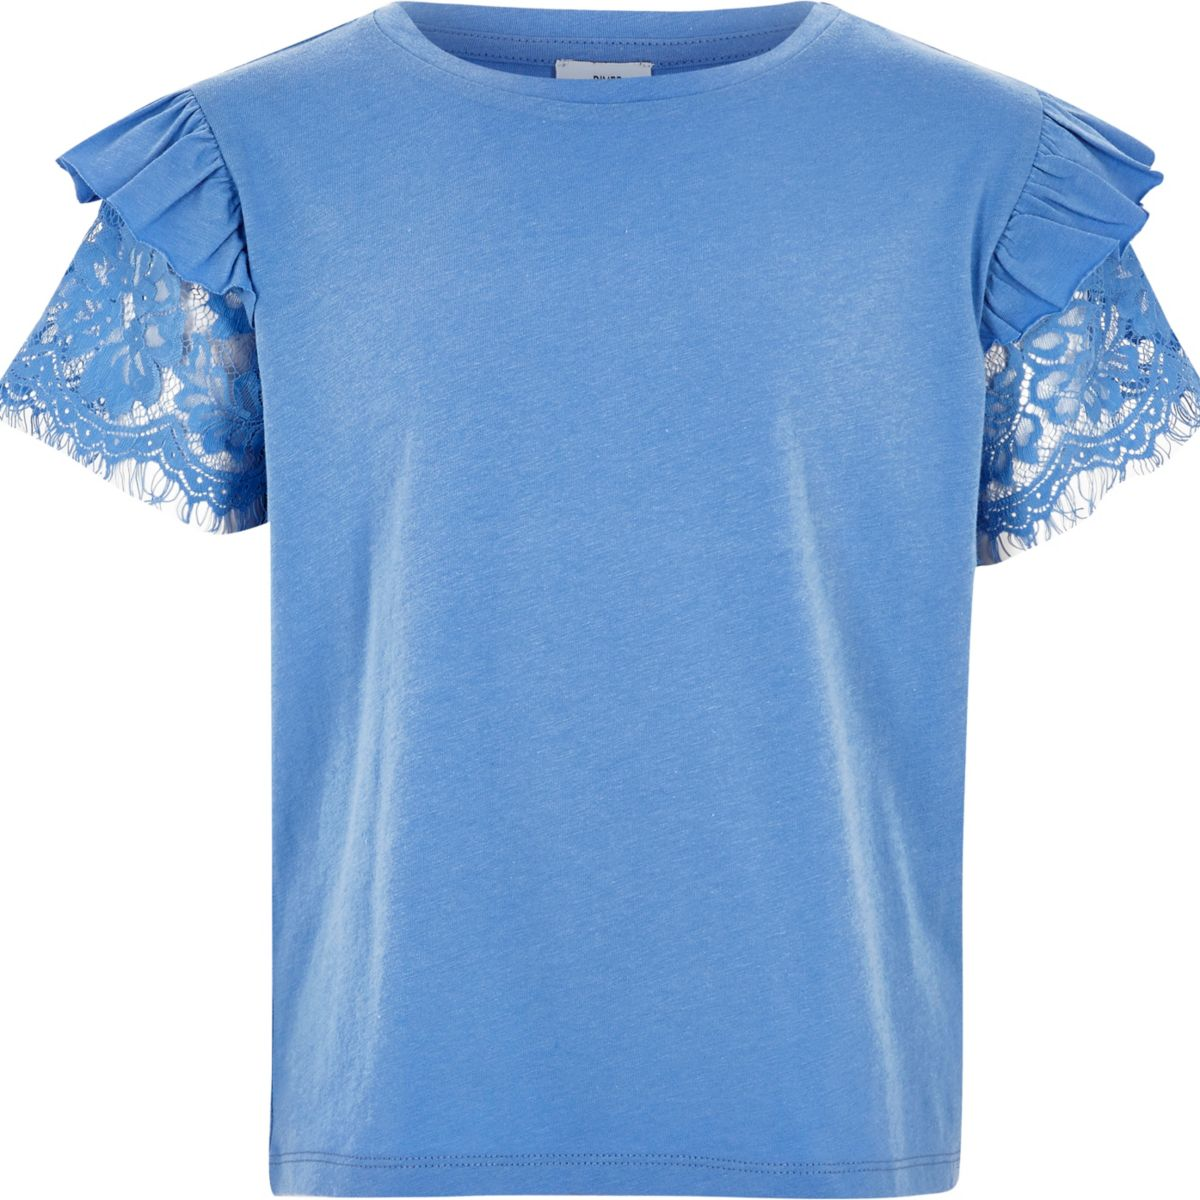 Girls blue frill lace short sleeve t shirt t shirts for Frill sleeve t shirt